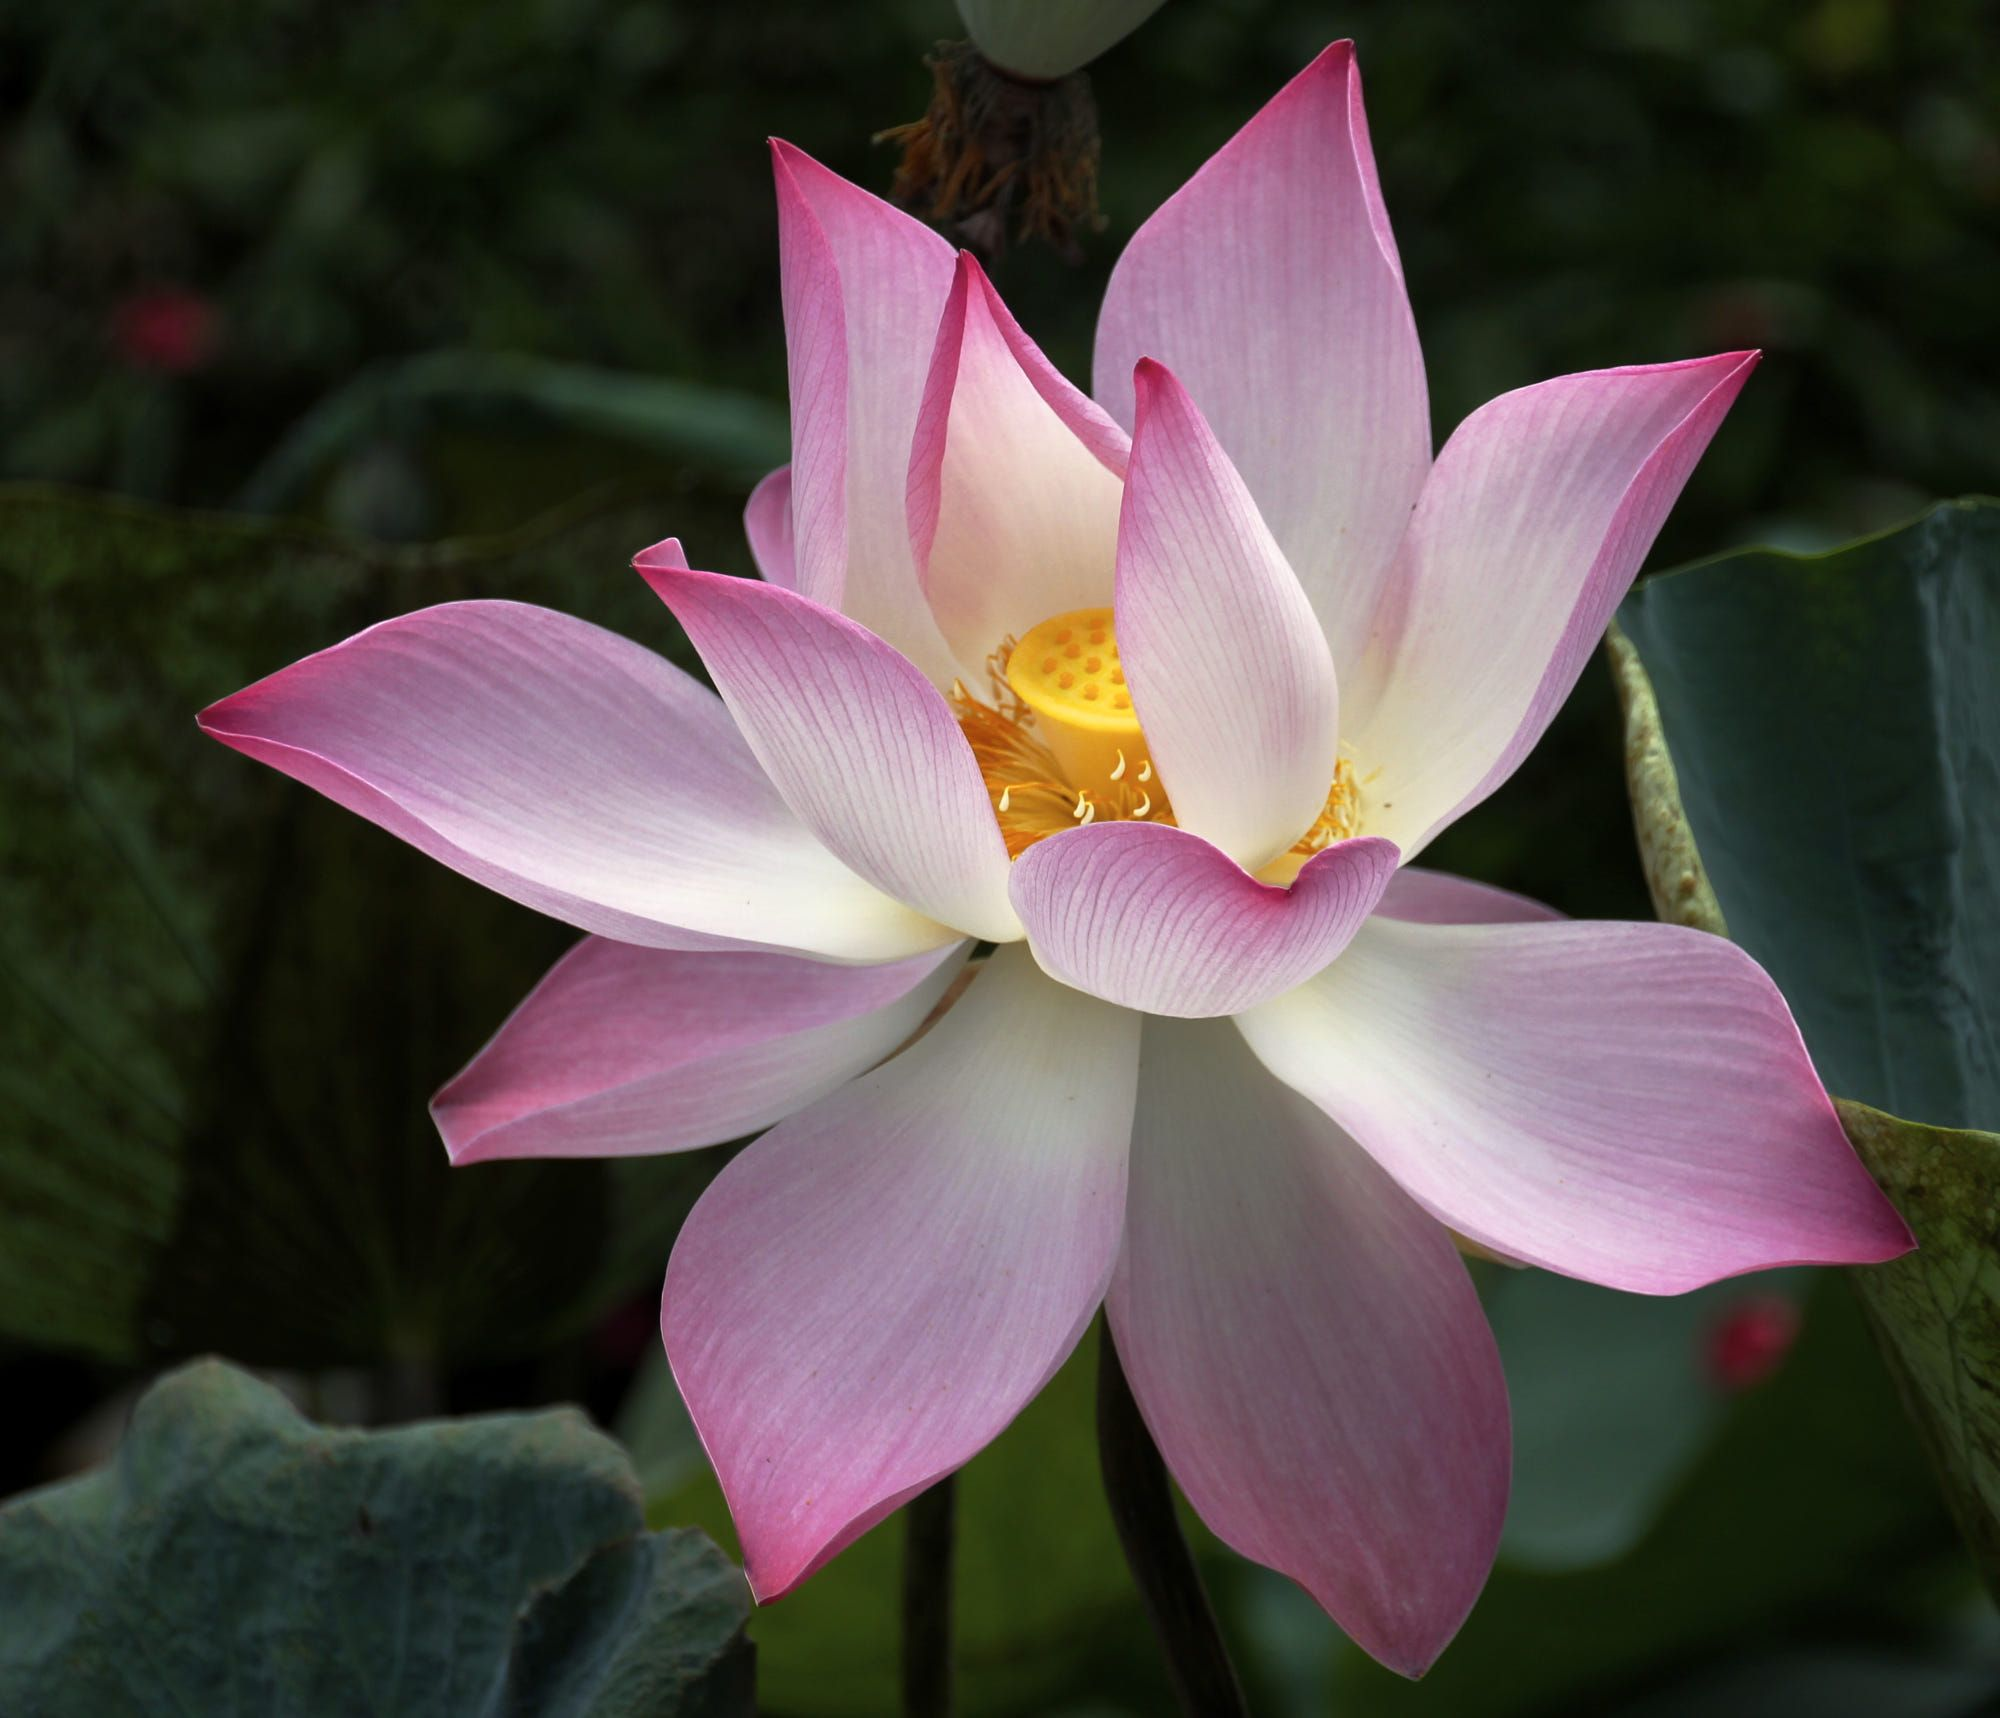 The Lotus Flower Symbolizes Good Fortune In Buddhism The Flower